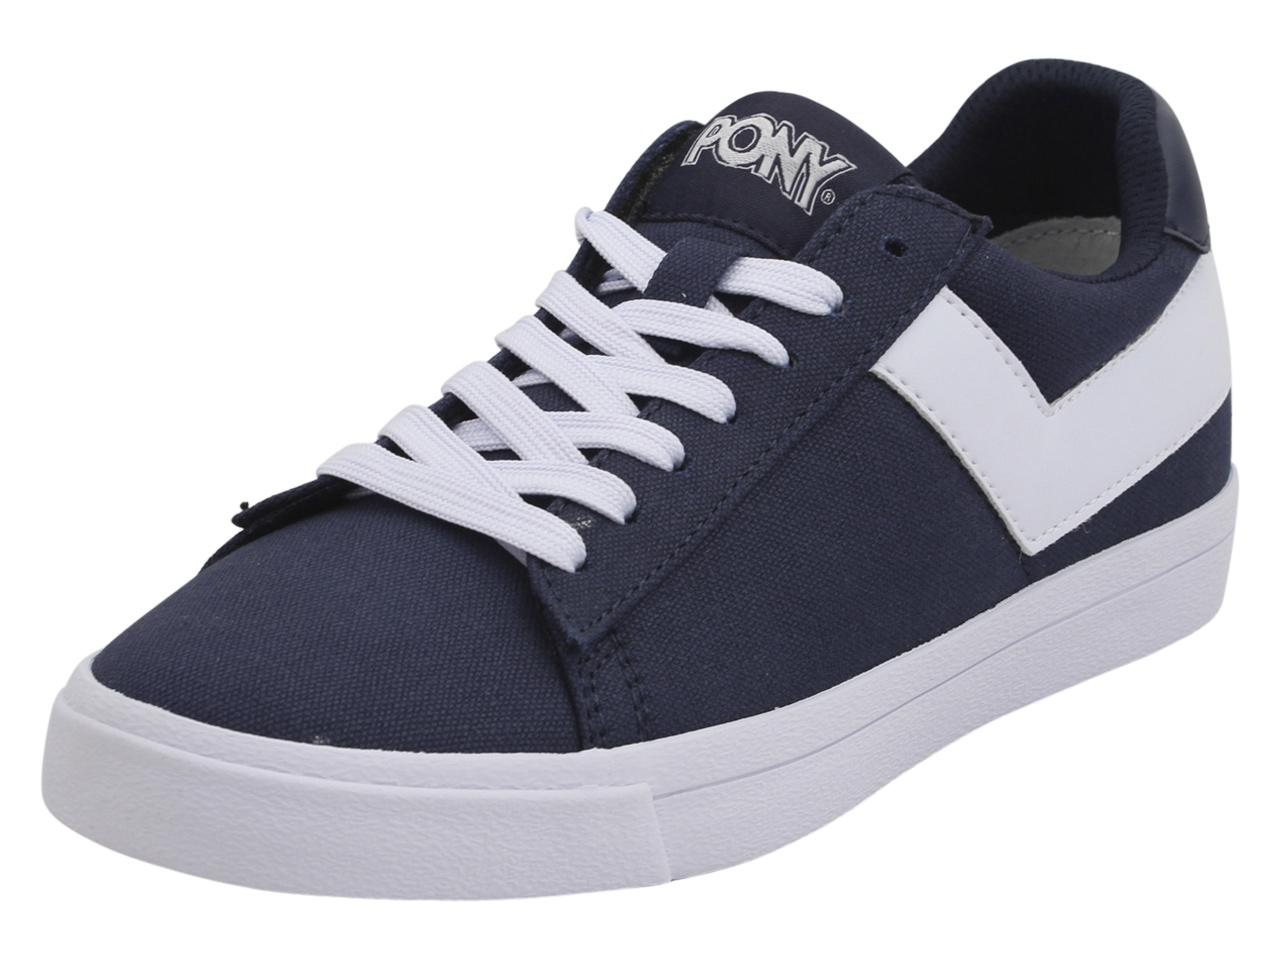 Image of Pony Women's Top Star Lo Core Canvas Sneakers Shoes - Blue - 8 B(M) US